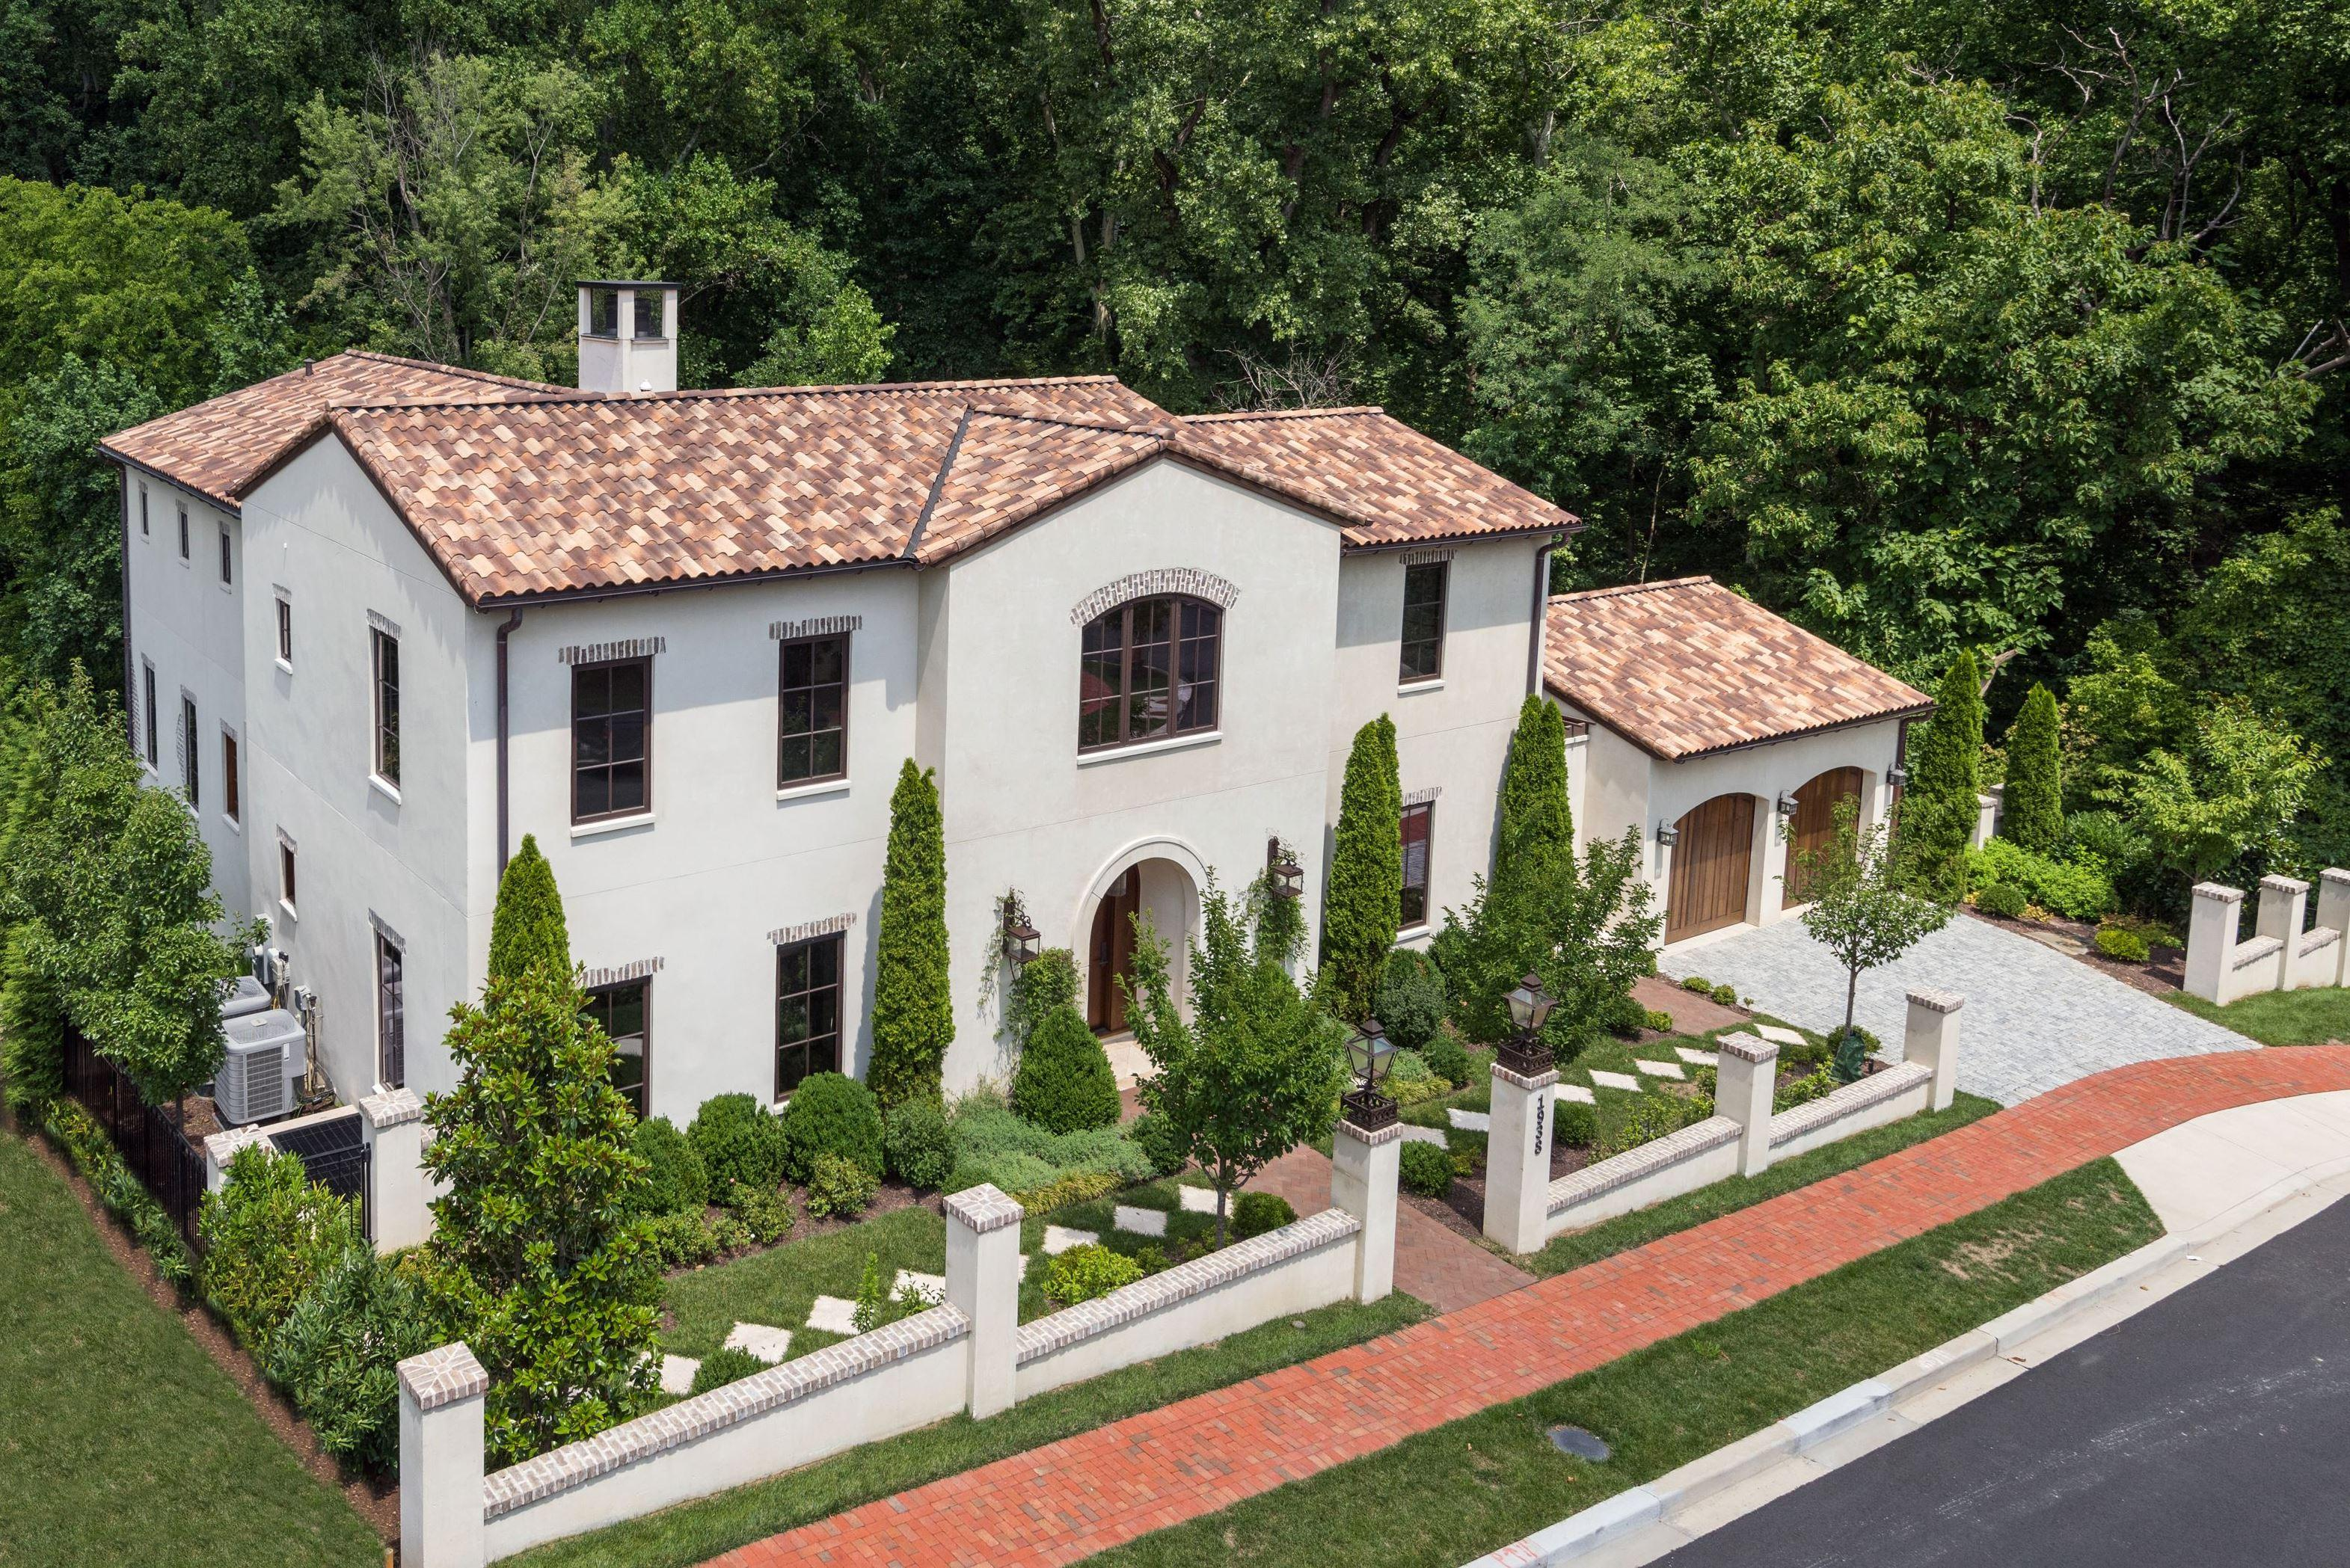 "You'd never guess that this Italian-inspired villa exists within the city limits, but it surely does! Built in 2016 by GTM Architects and Sandy Spring Builders, the 5-bedroom/6-bath estate looks like something straight out of ""Under the Tuscan Sun."" The home's amenities include beamed ceilings, multiple fireplaces, limestone counters, exotic imported European tiles, a wine cellar, a deluxe garden/potting room on the lower level and several multi-tiered terraces, patios and balconies all overlooking a private park and dramatic water fountain. (Image: Courtesy Homevisit)"